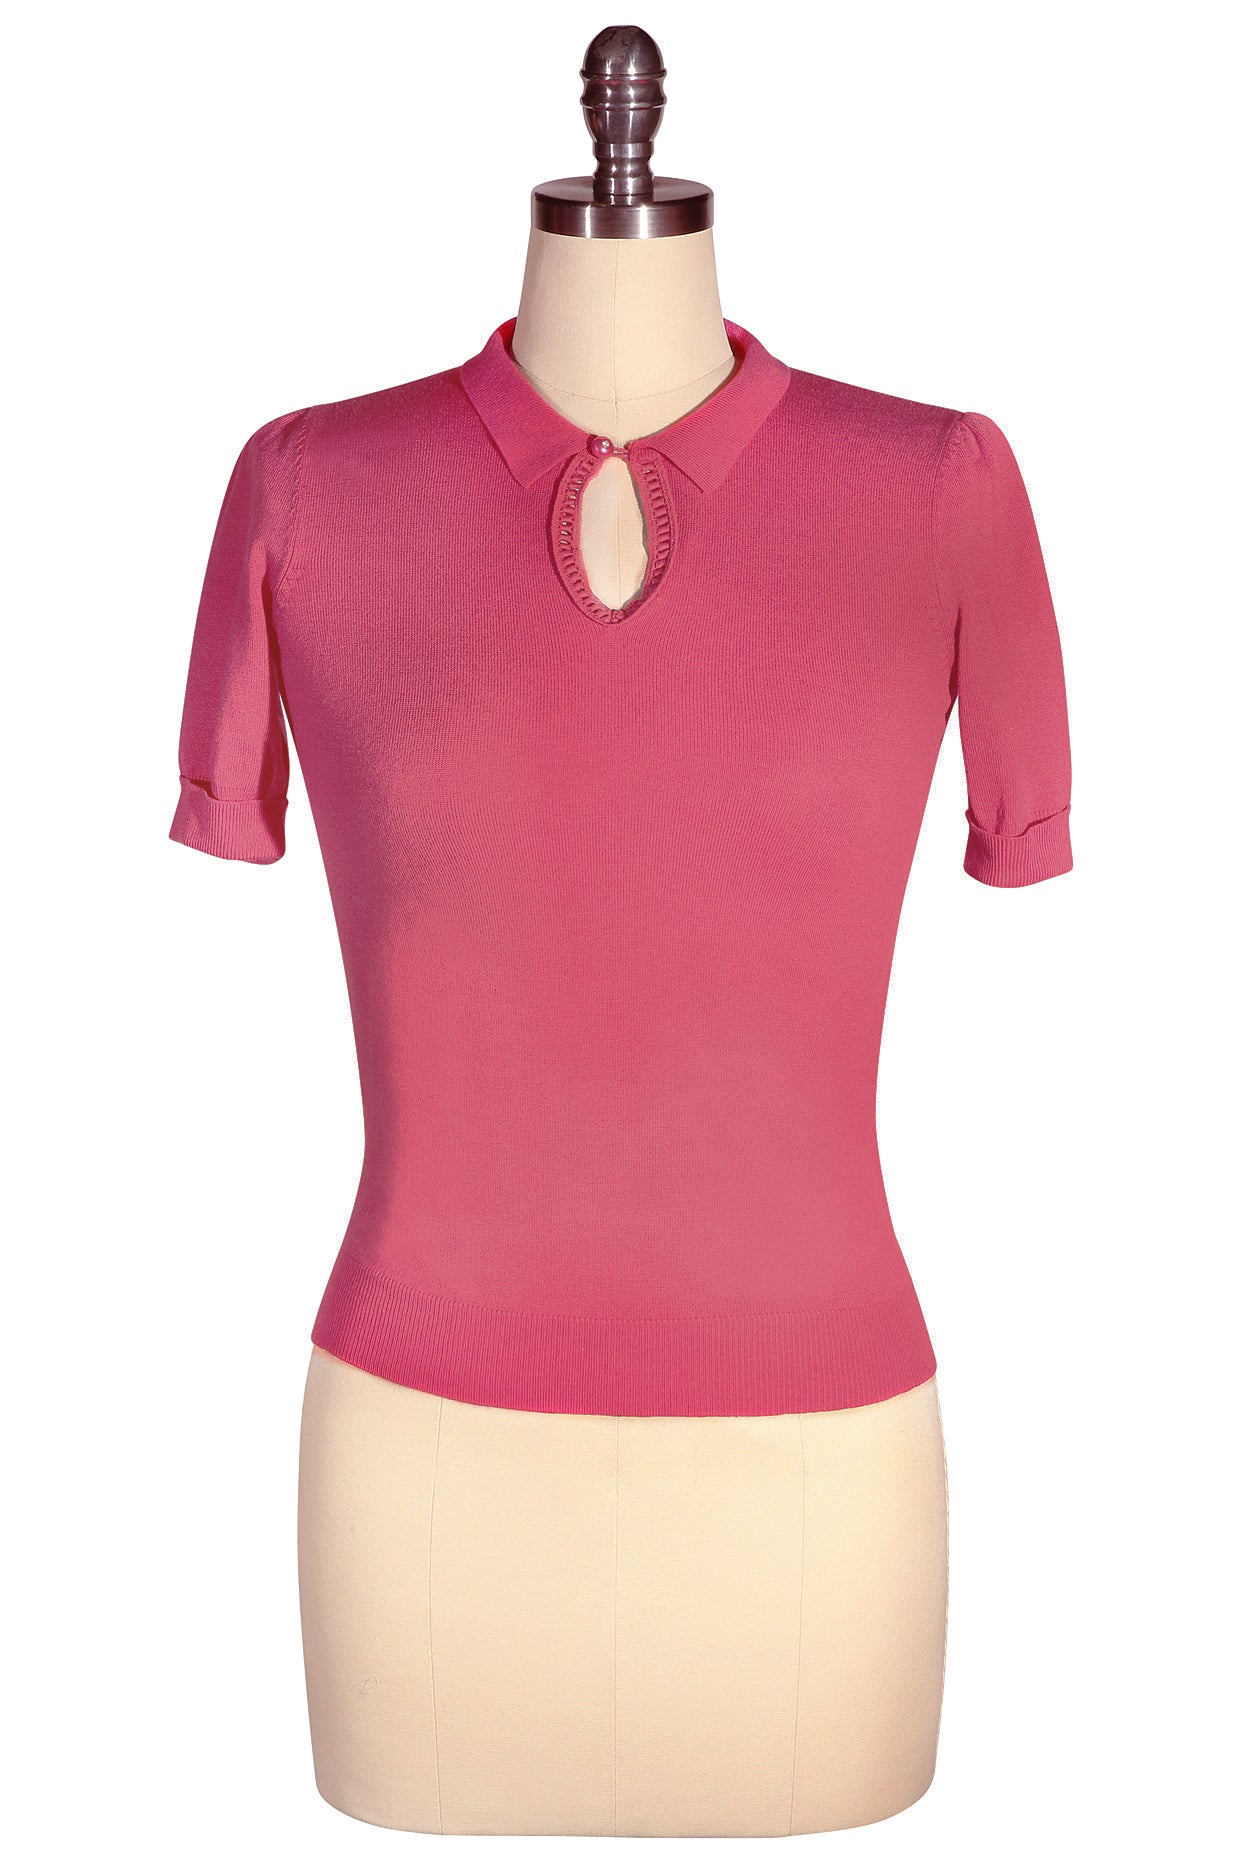 D'Amour Keyhole Knit Top (Hot Pink)